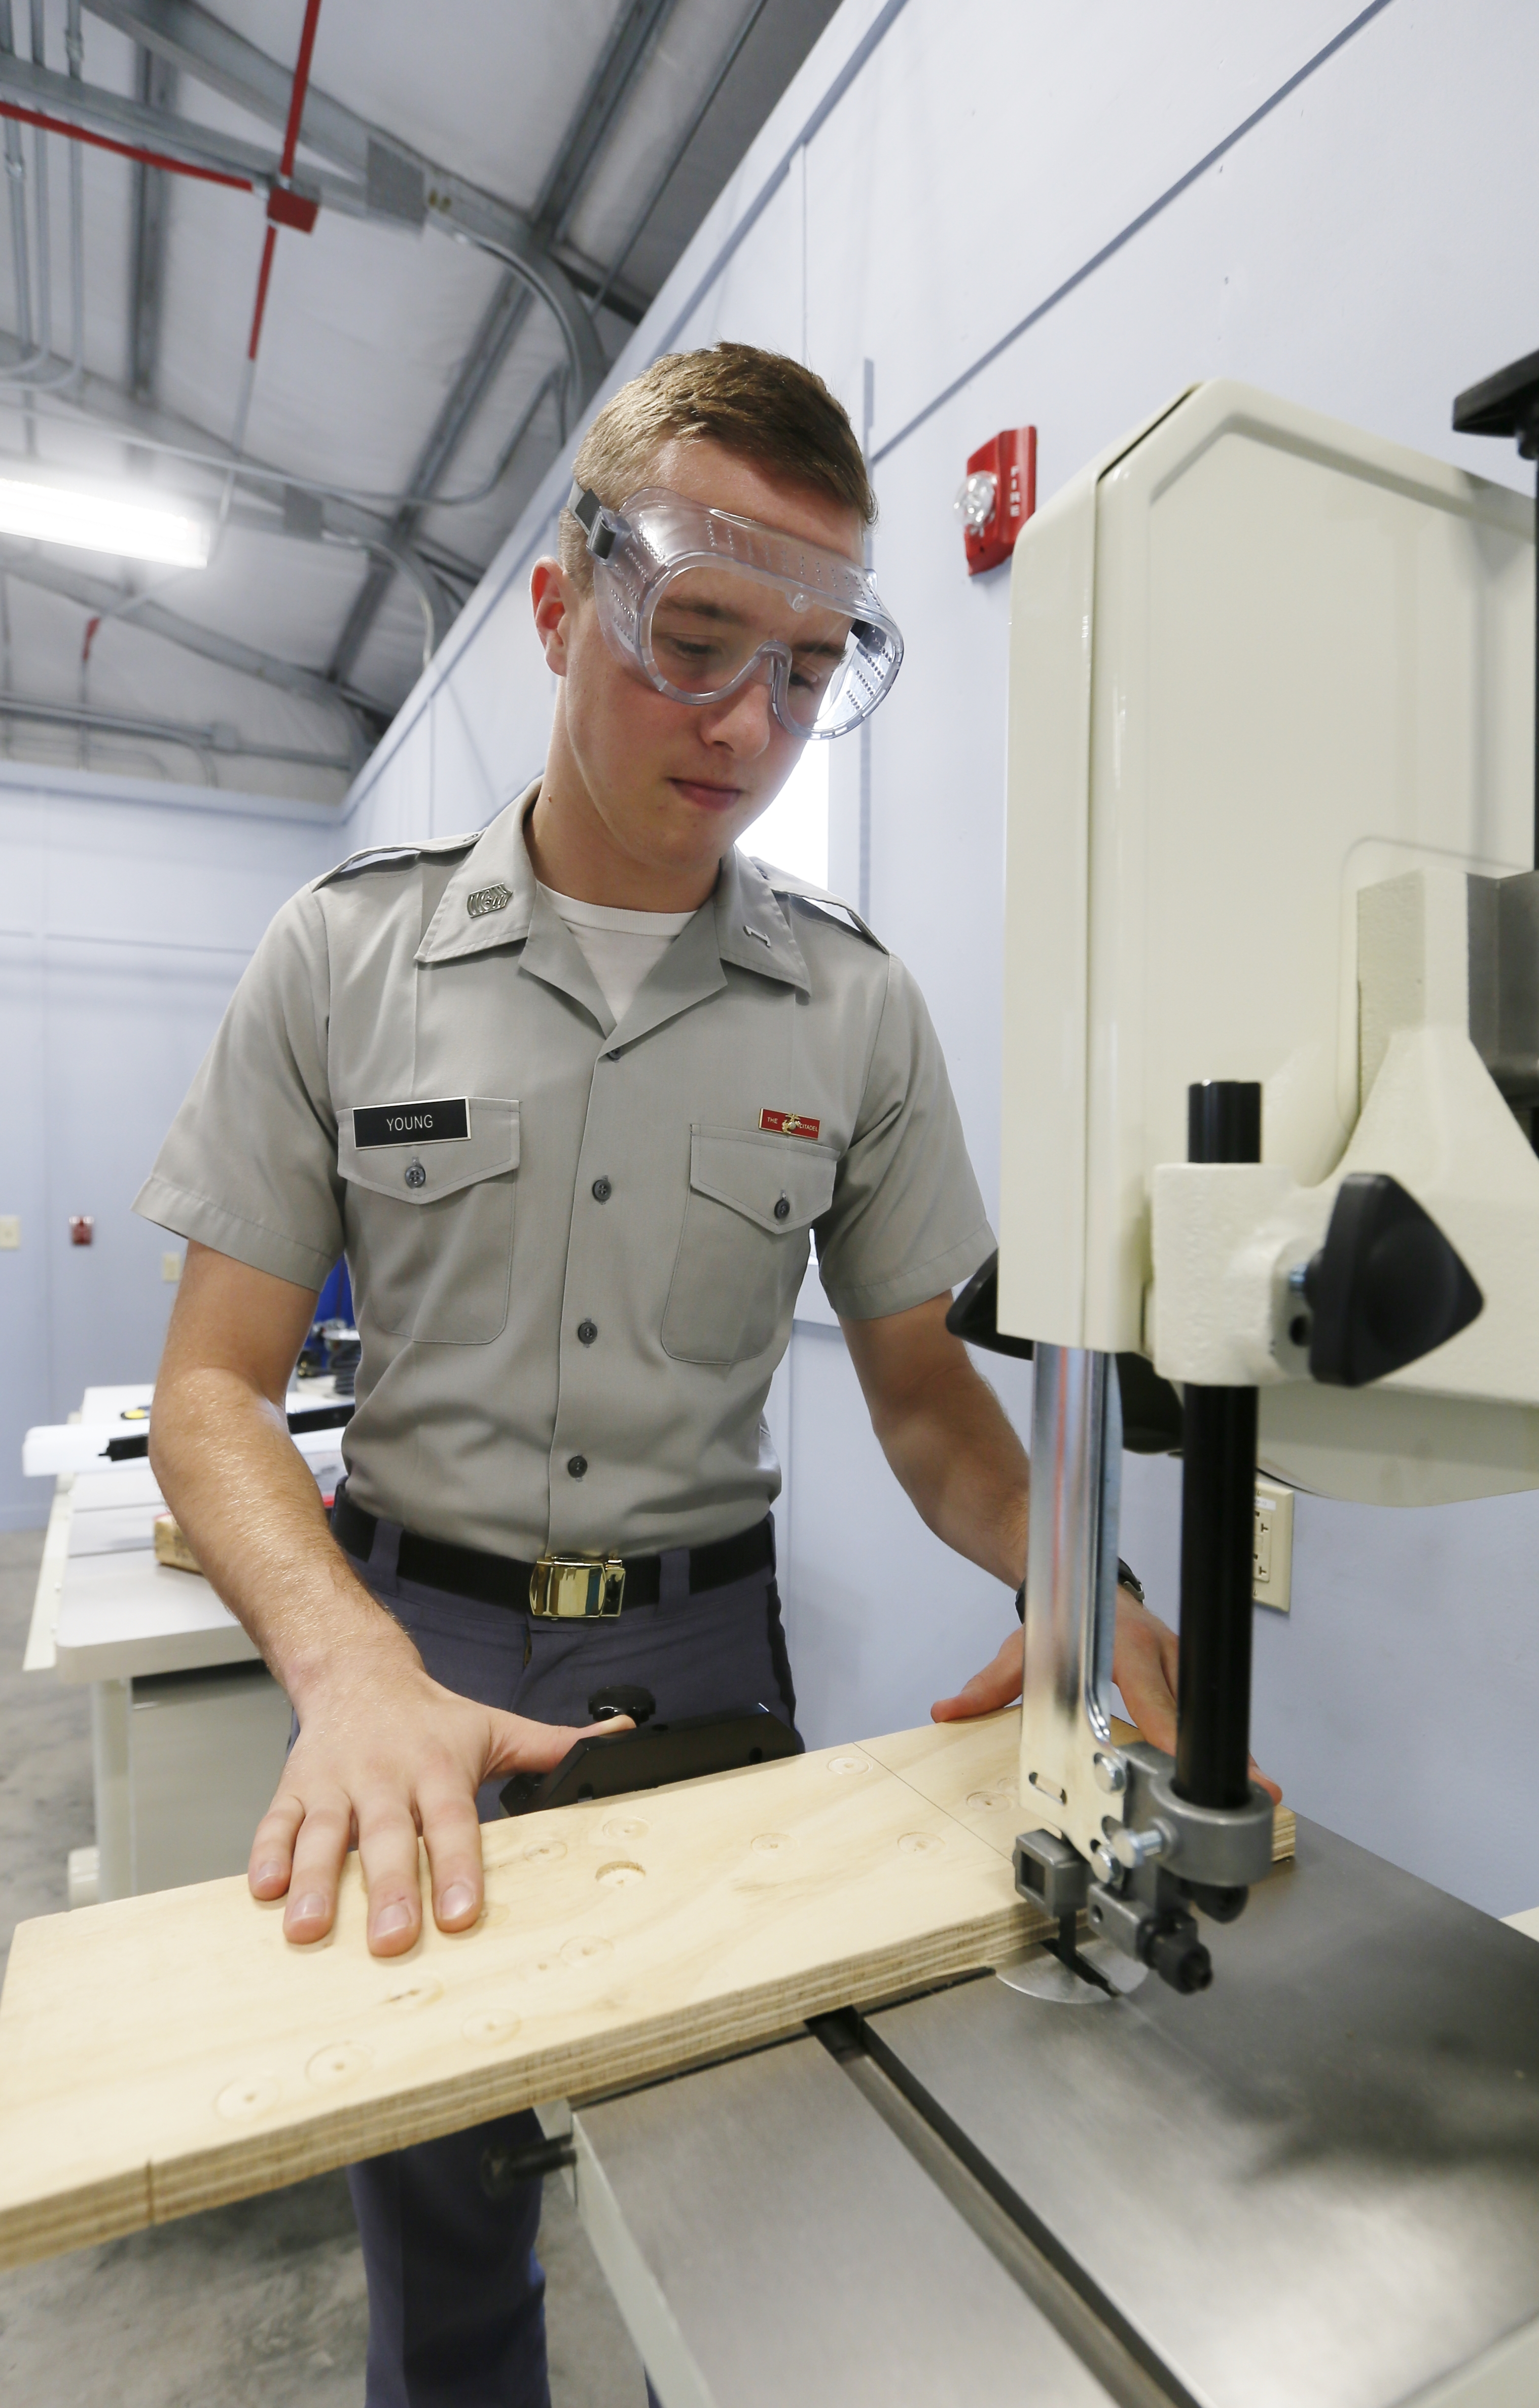 Citadel cadet in new fabrication shop